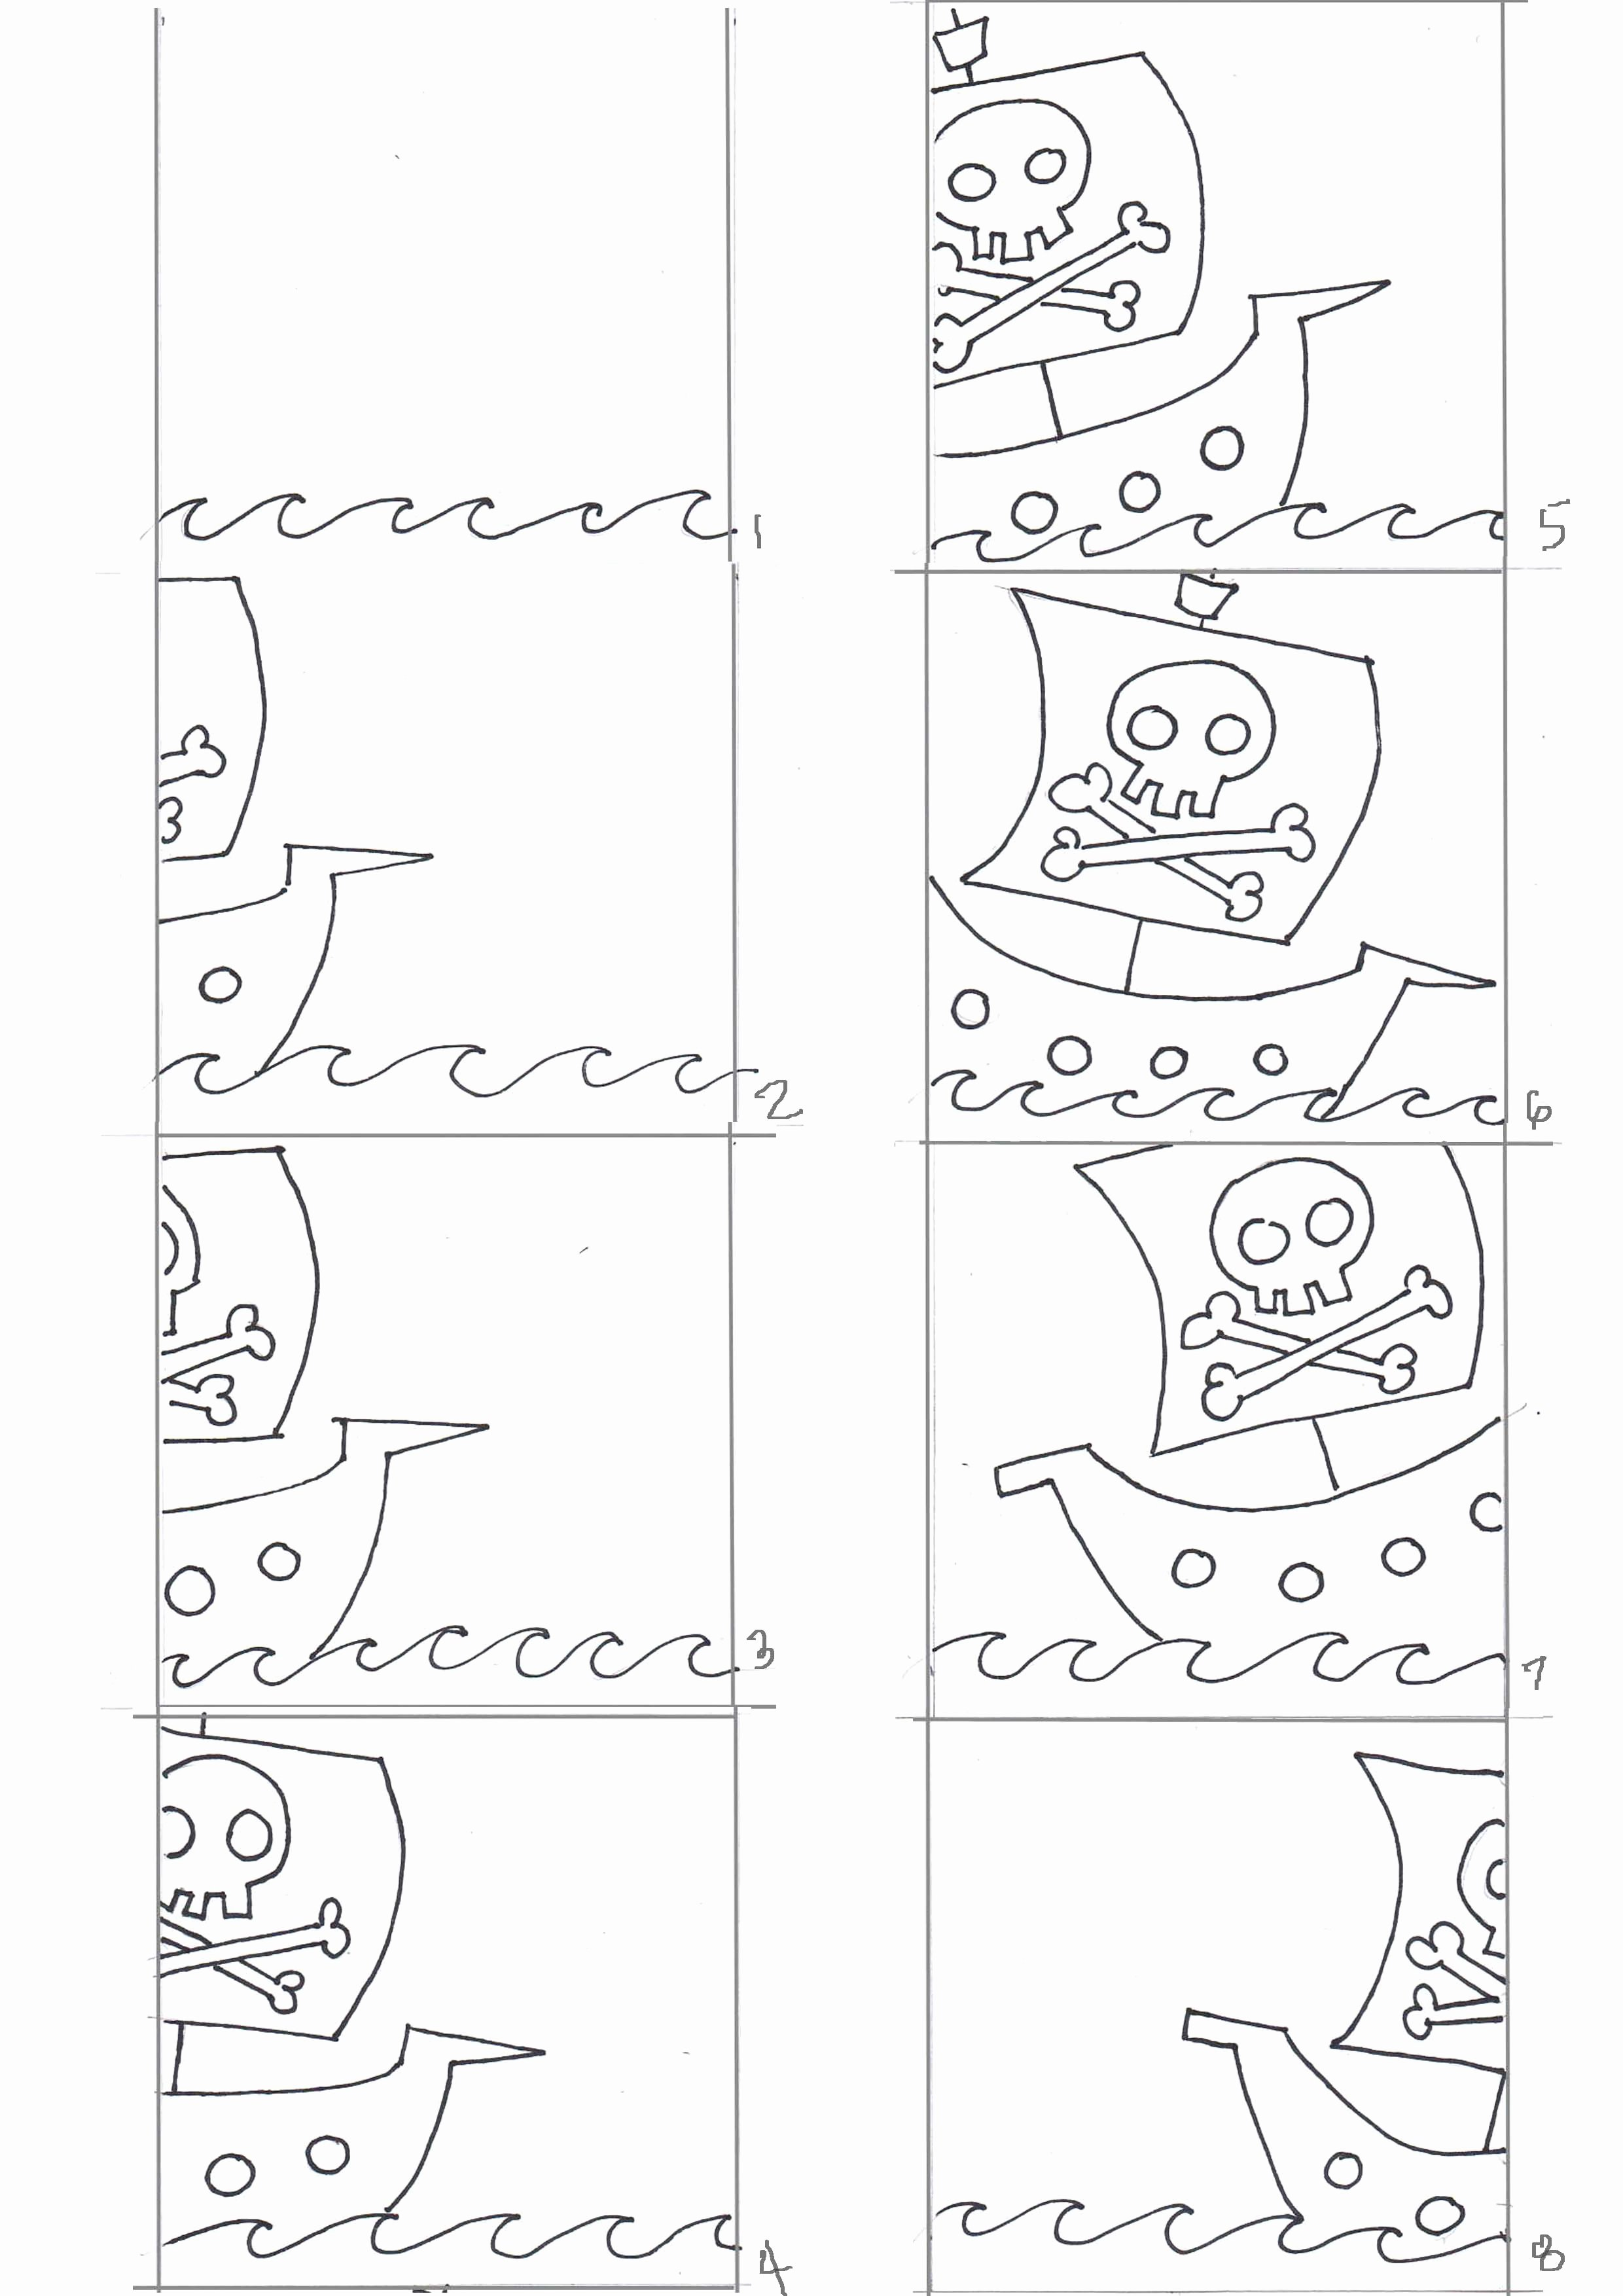 Flip Book Template Printable Awesome Animation Flip Book Workshop